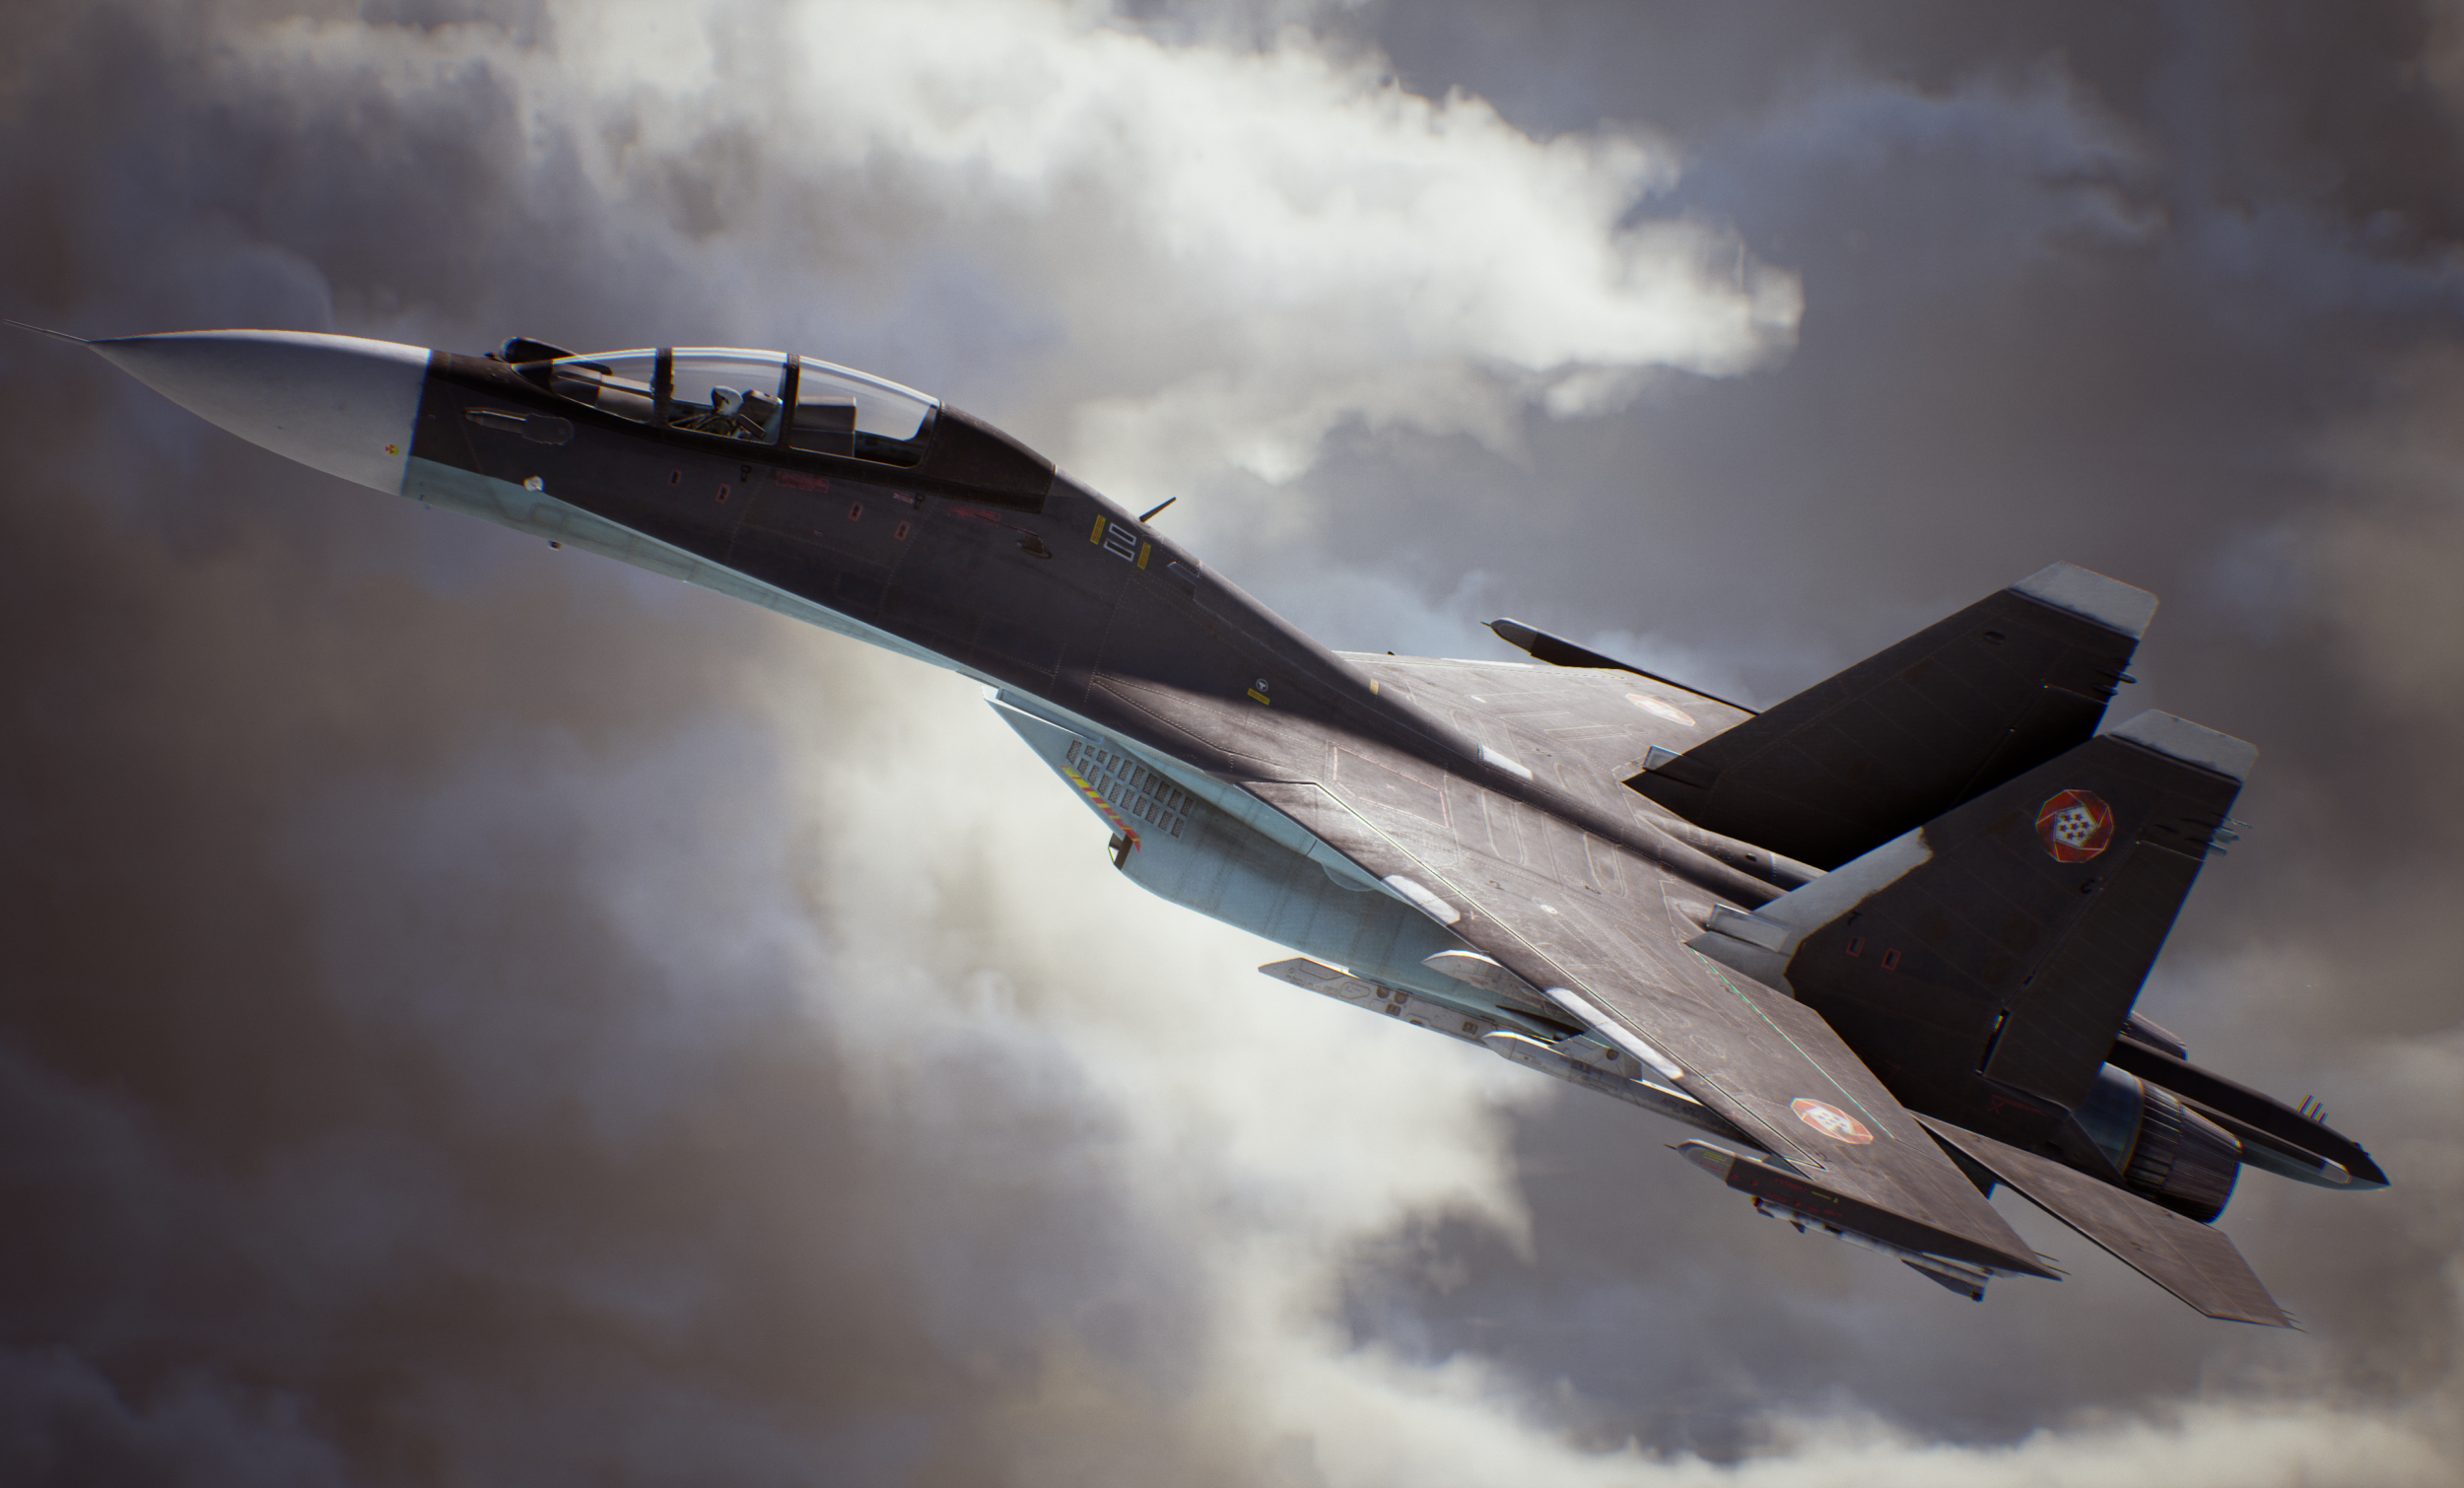 Ace Combat 7: Skies Unknown for PlayStation 4 - GameFAQs